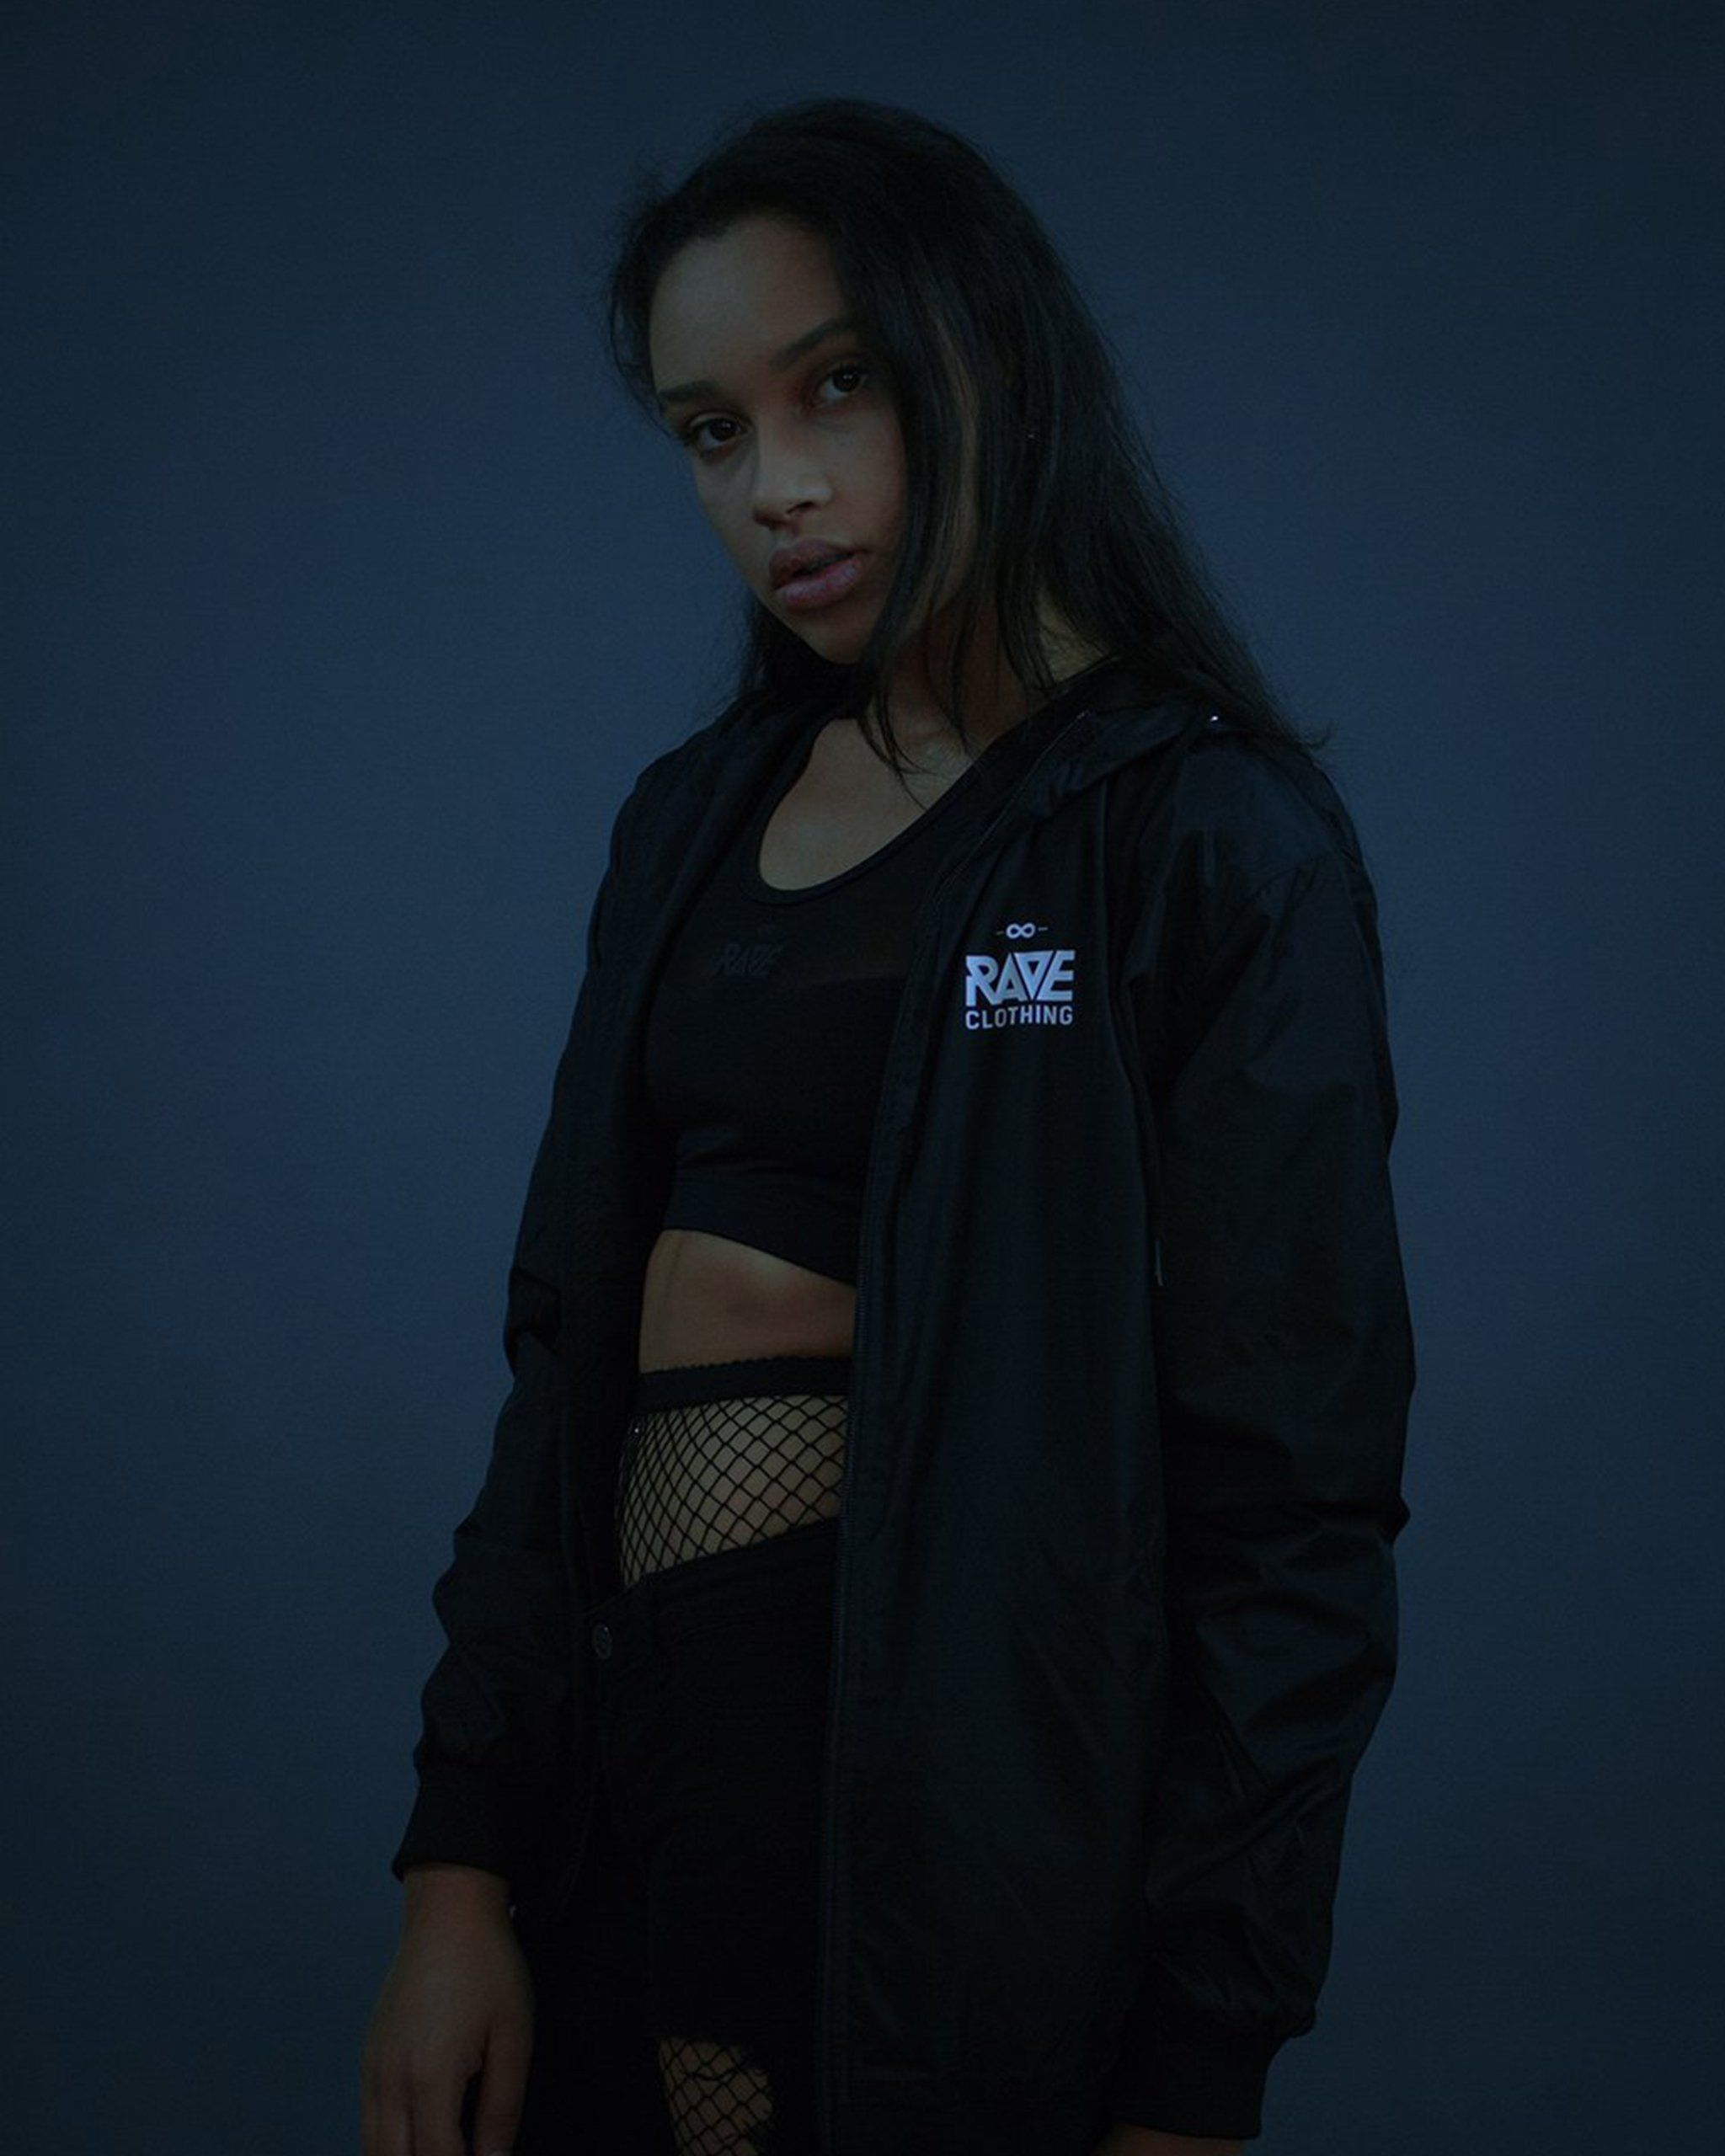 RAVE windbreaker in black for women by RAVE Clothing